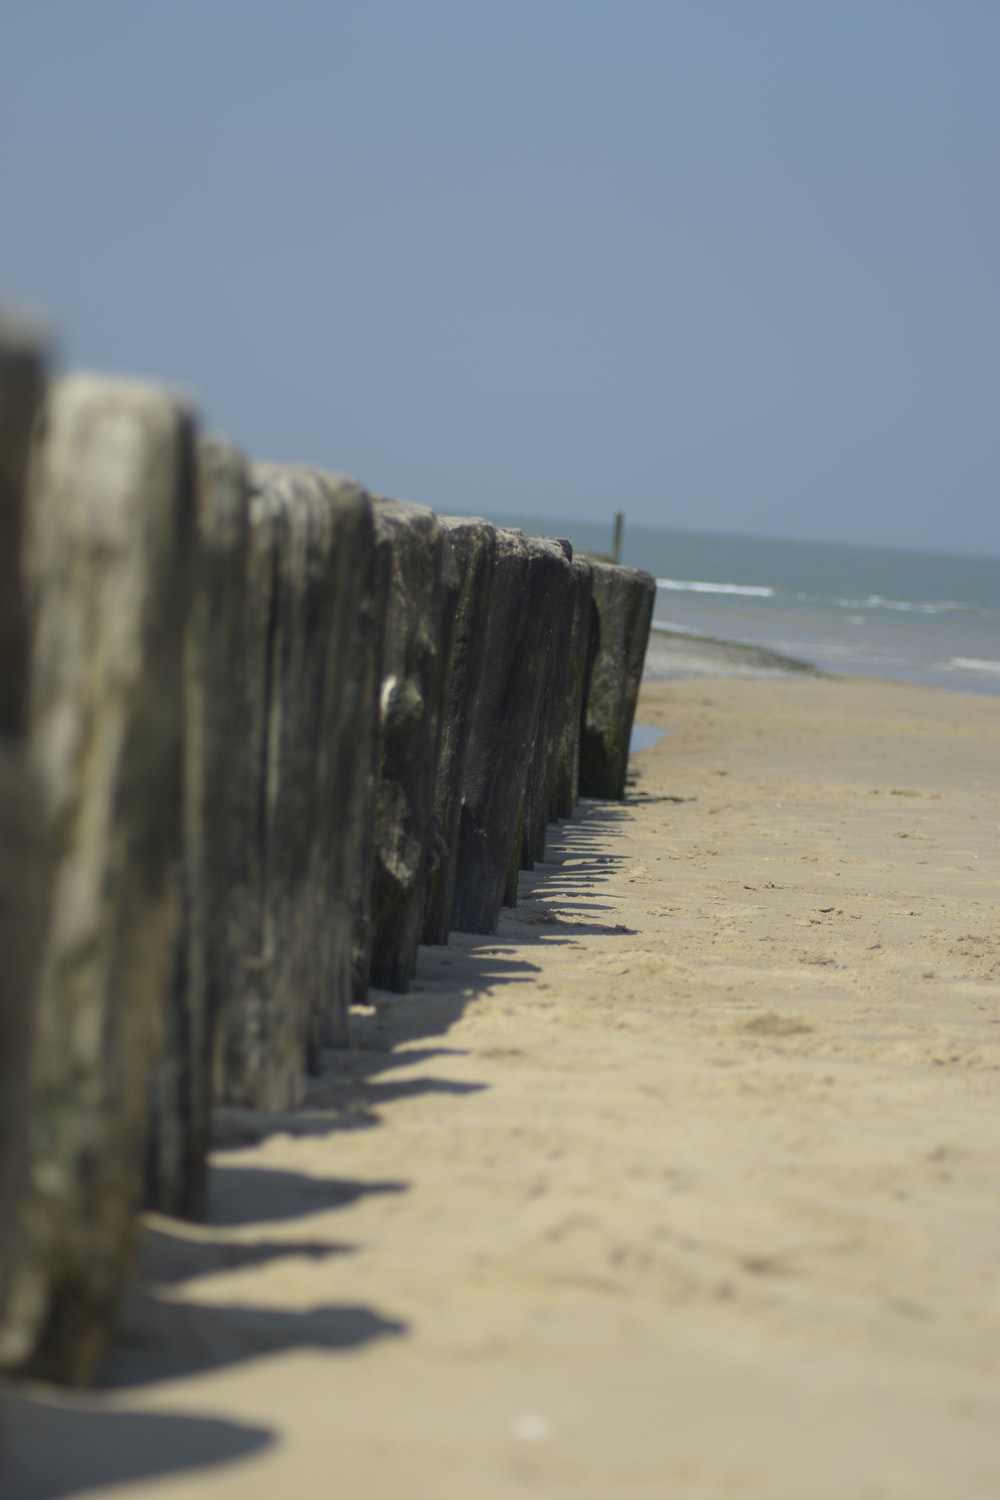 gray wooden fence on beach during daytime